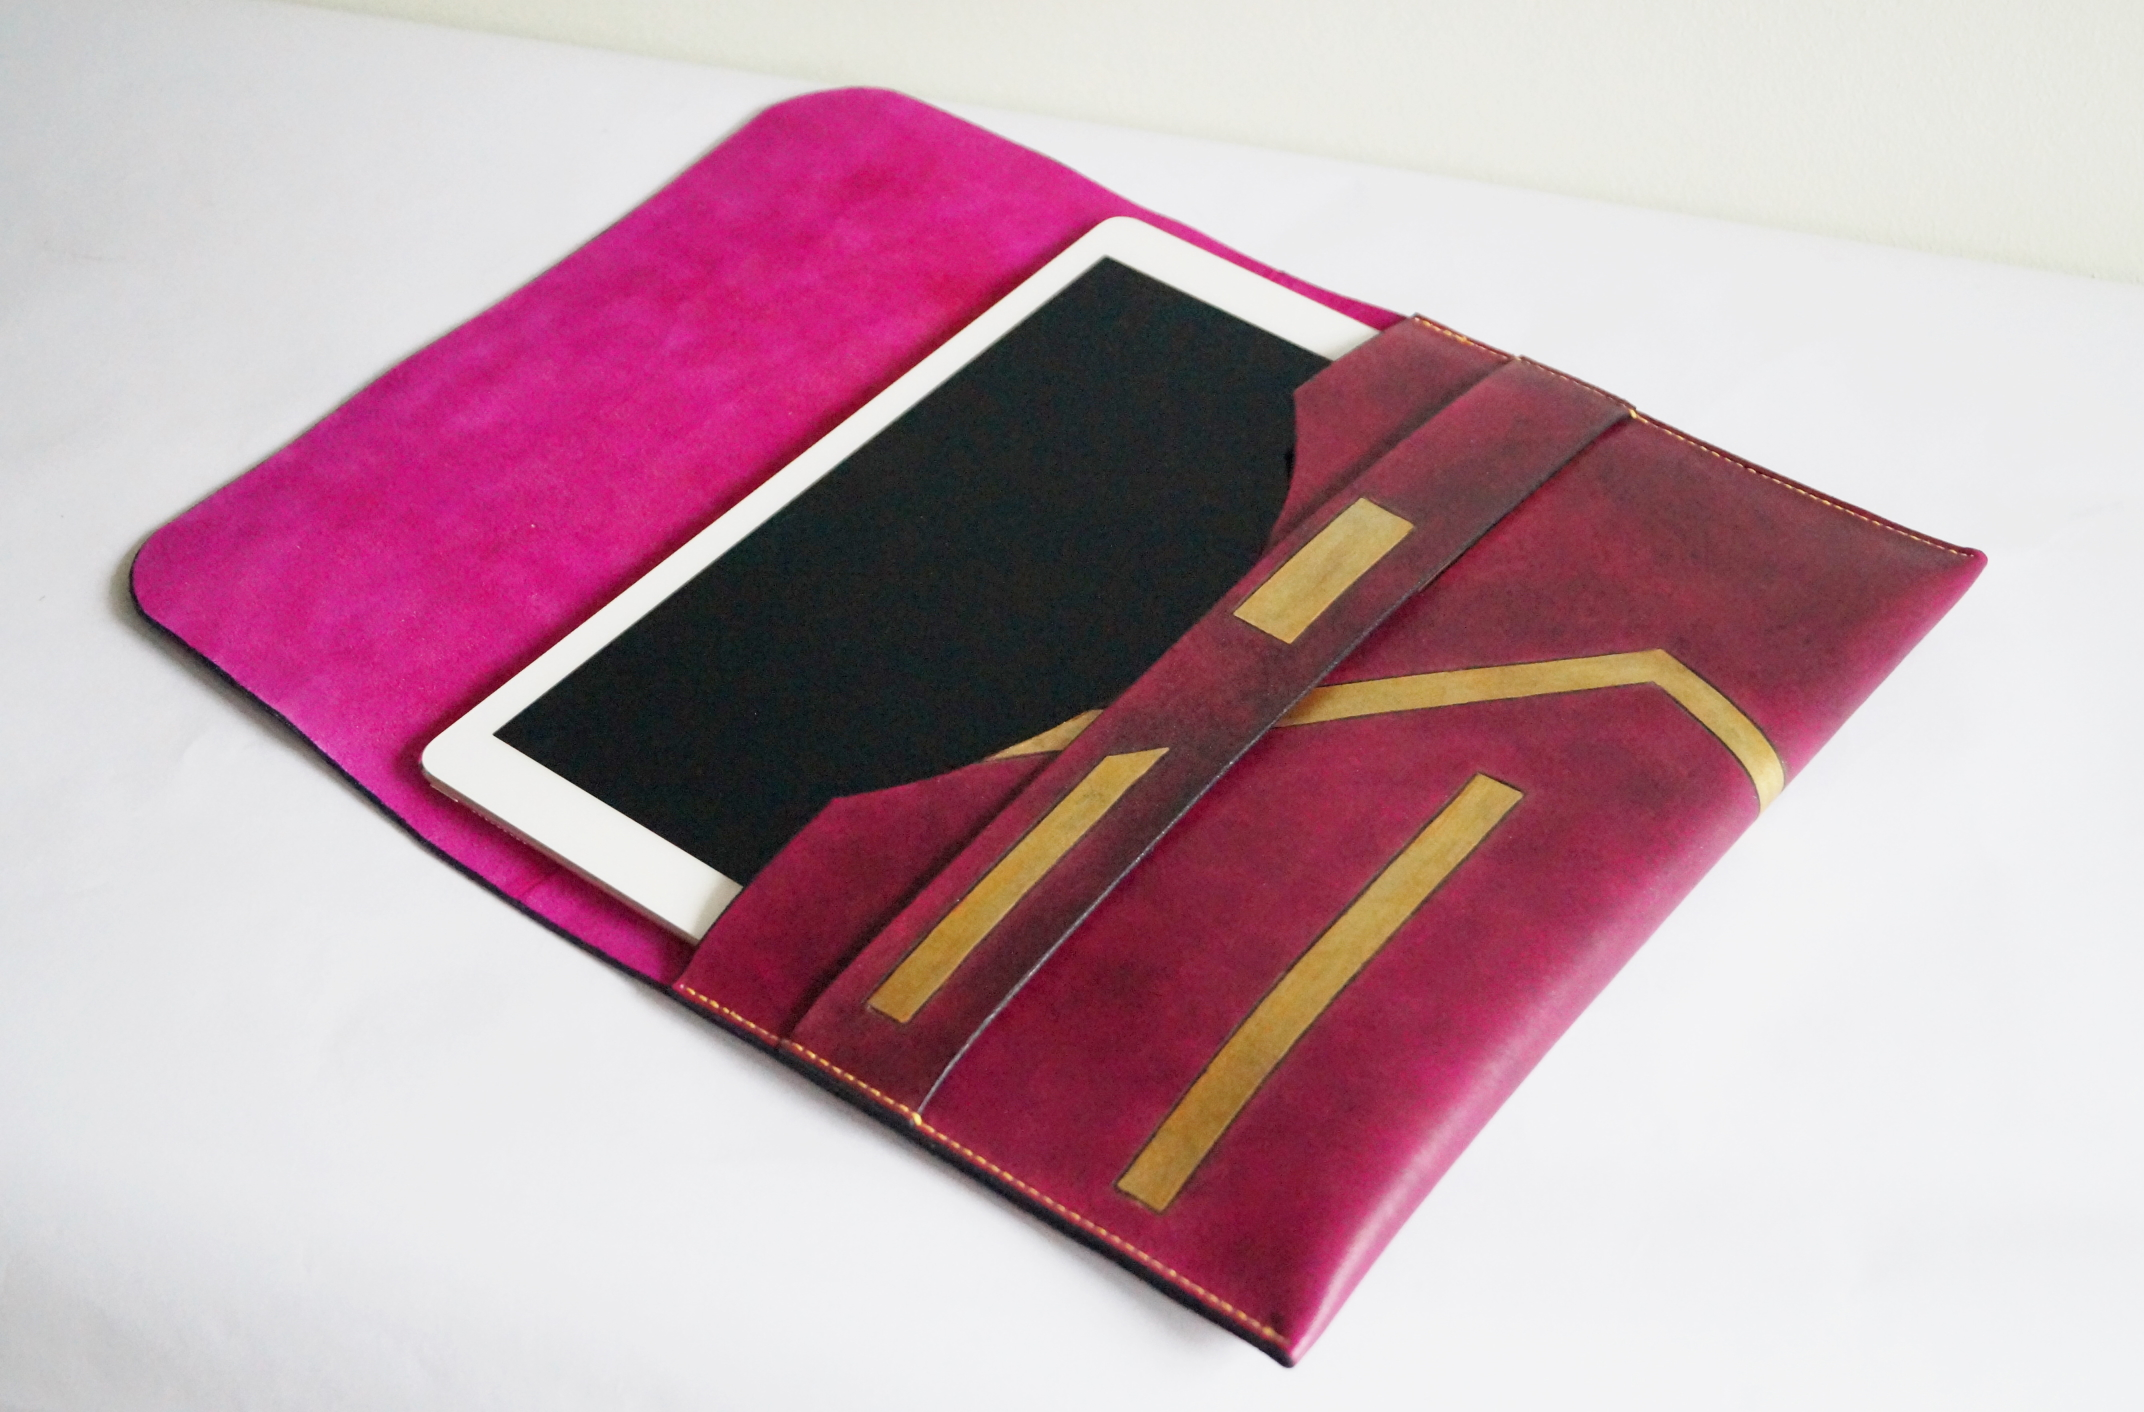 Handmade leather iPad case from TeLeather